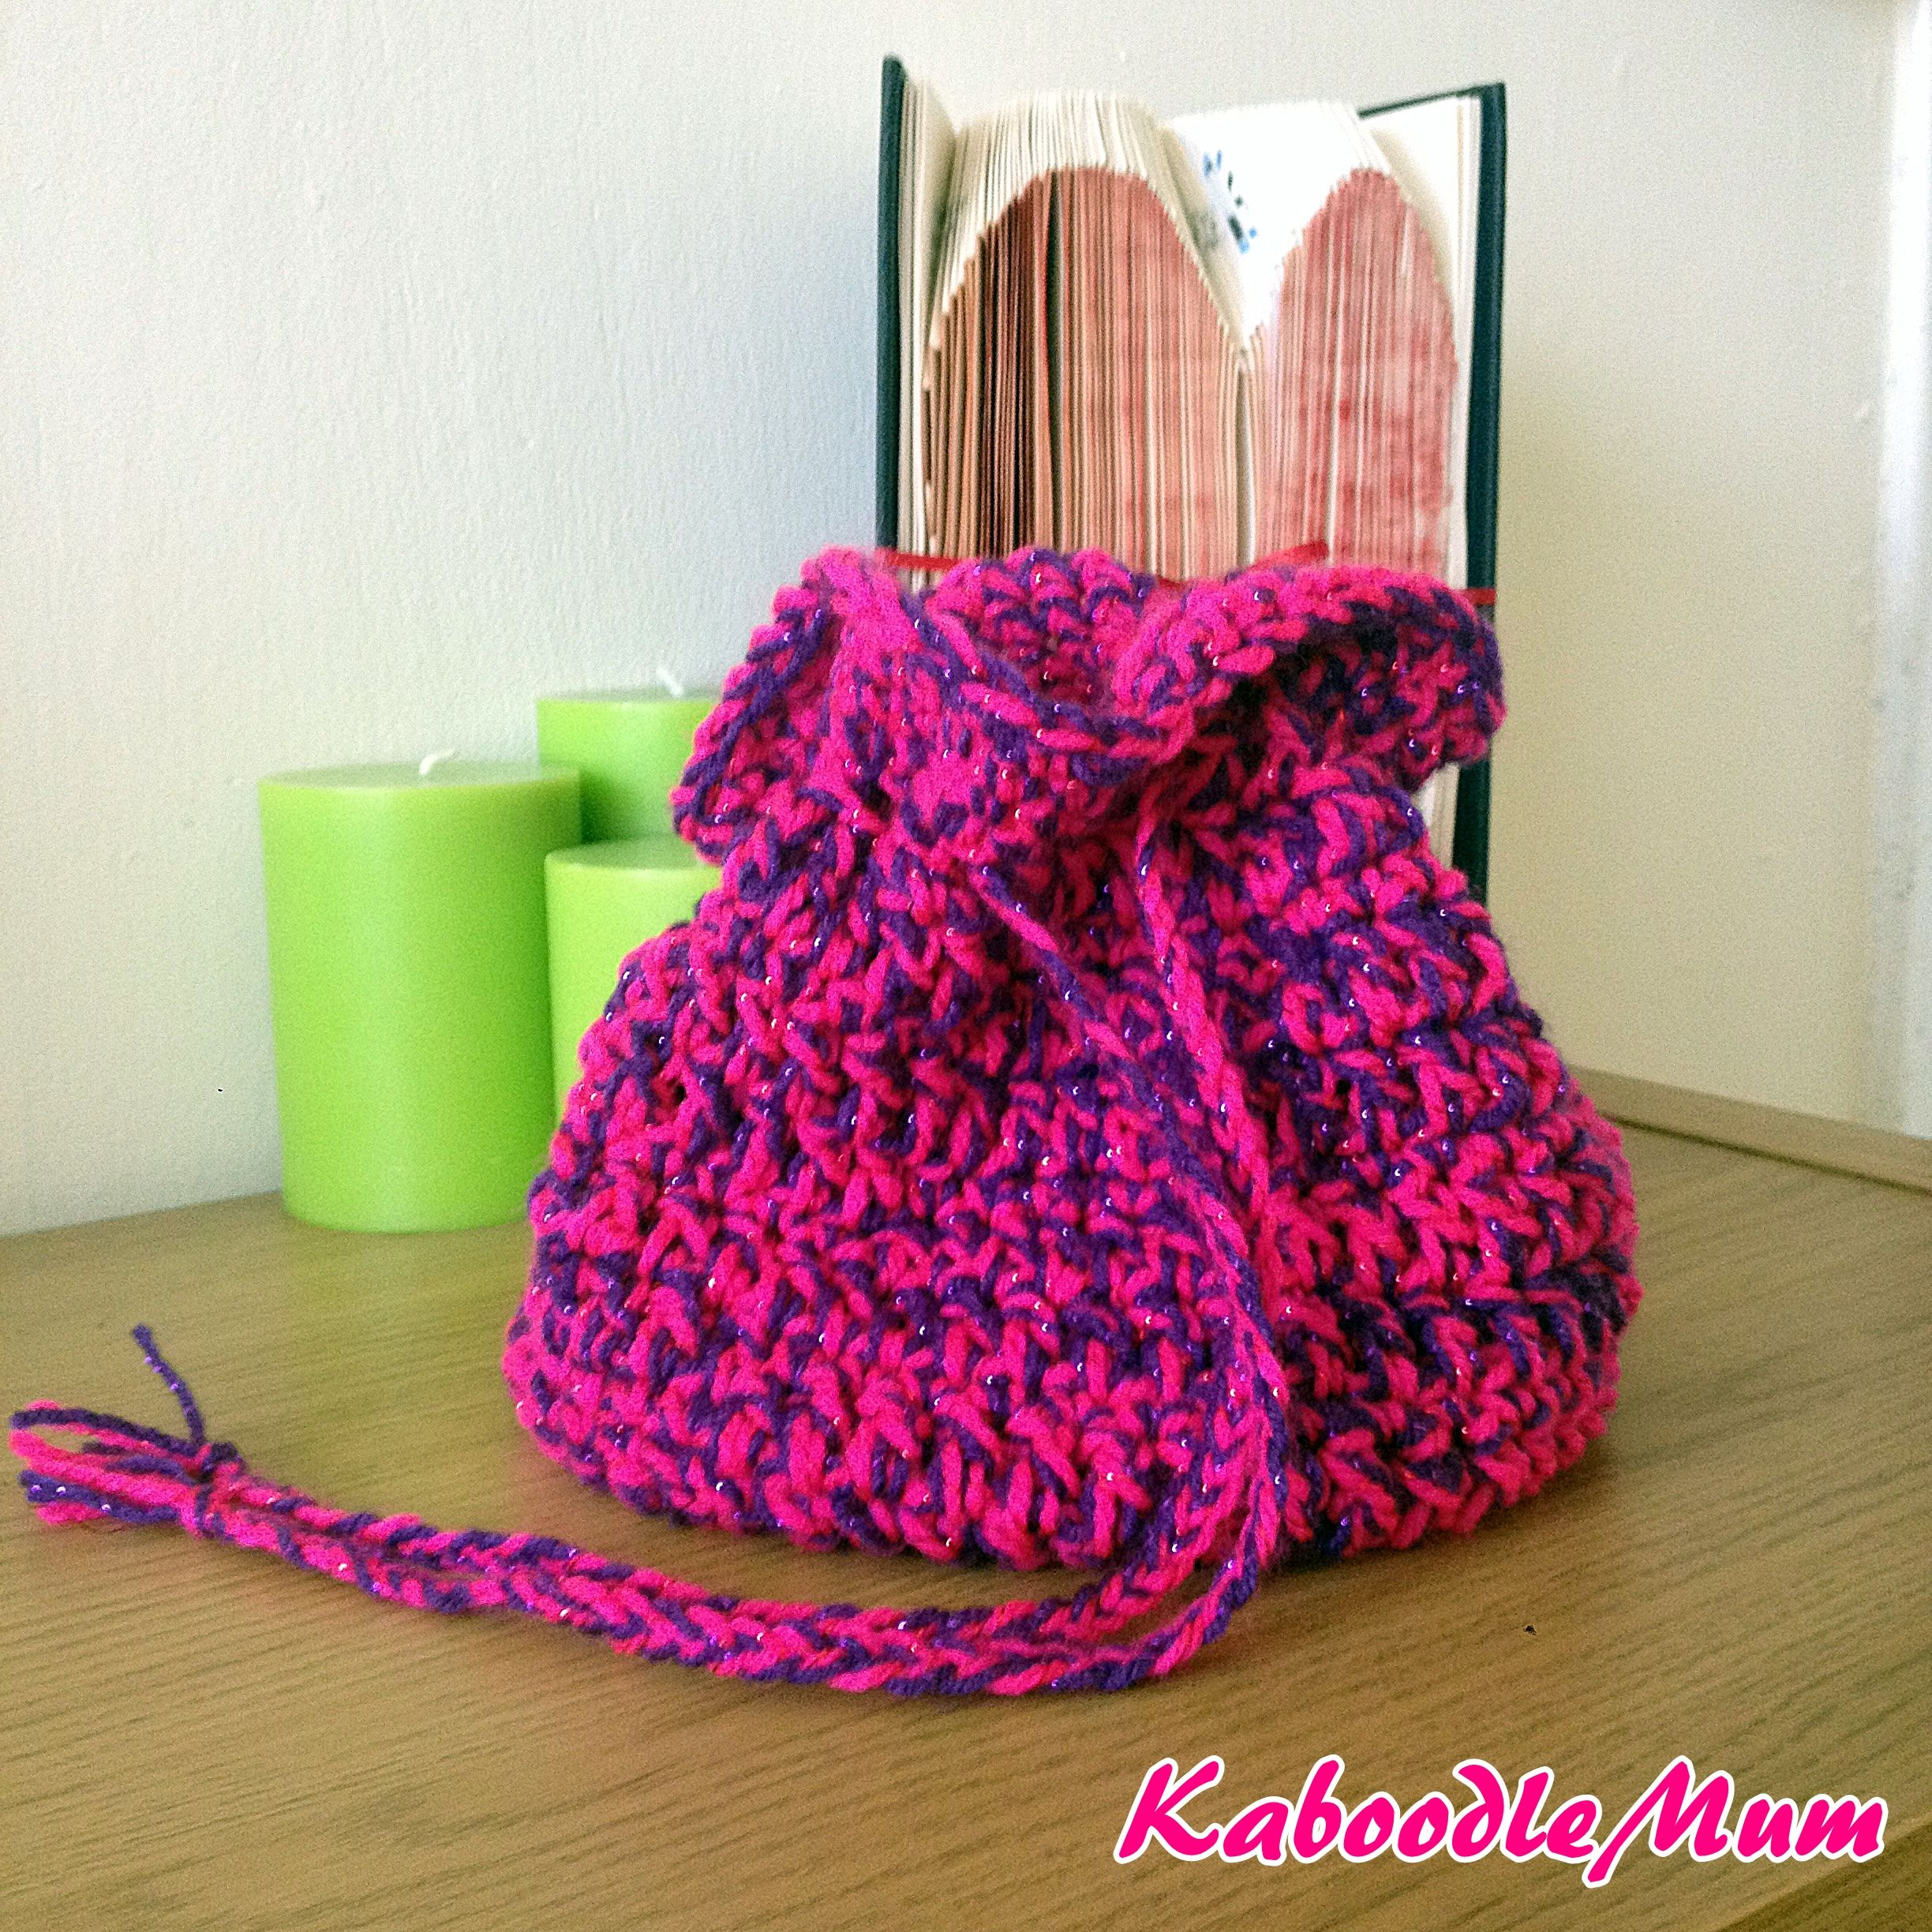 Crochet 25 round drawstring bag free crochet bag crocheted 25 round drawstring bag free crochet pattern by faye lobeck kaboodlemum bankloansurffo Image collections